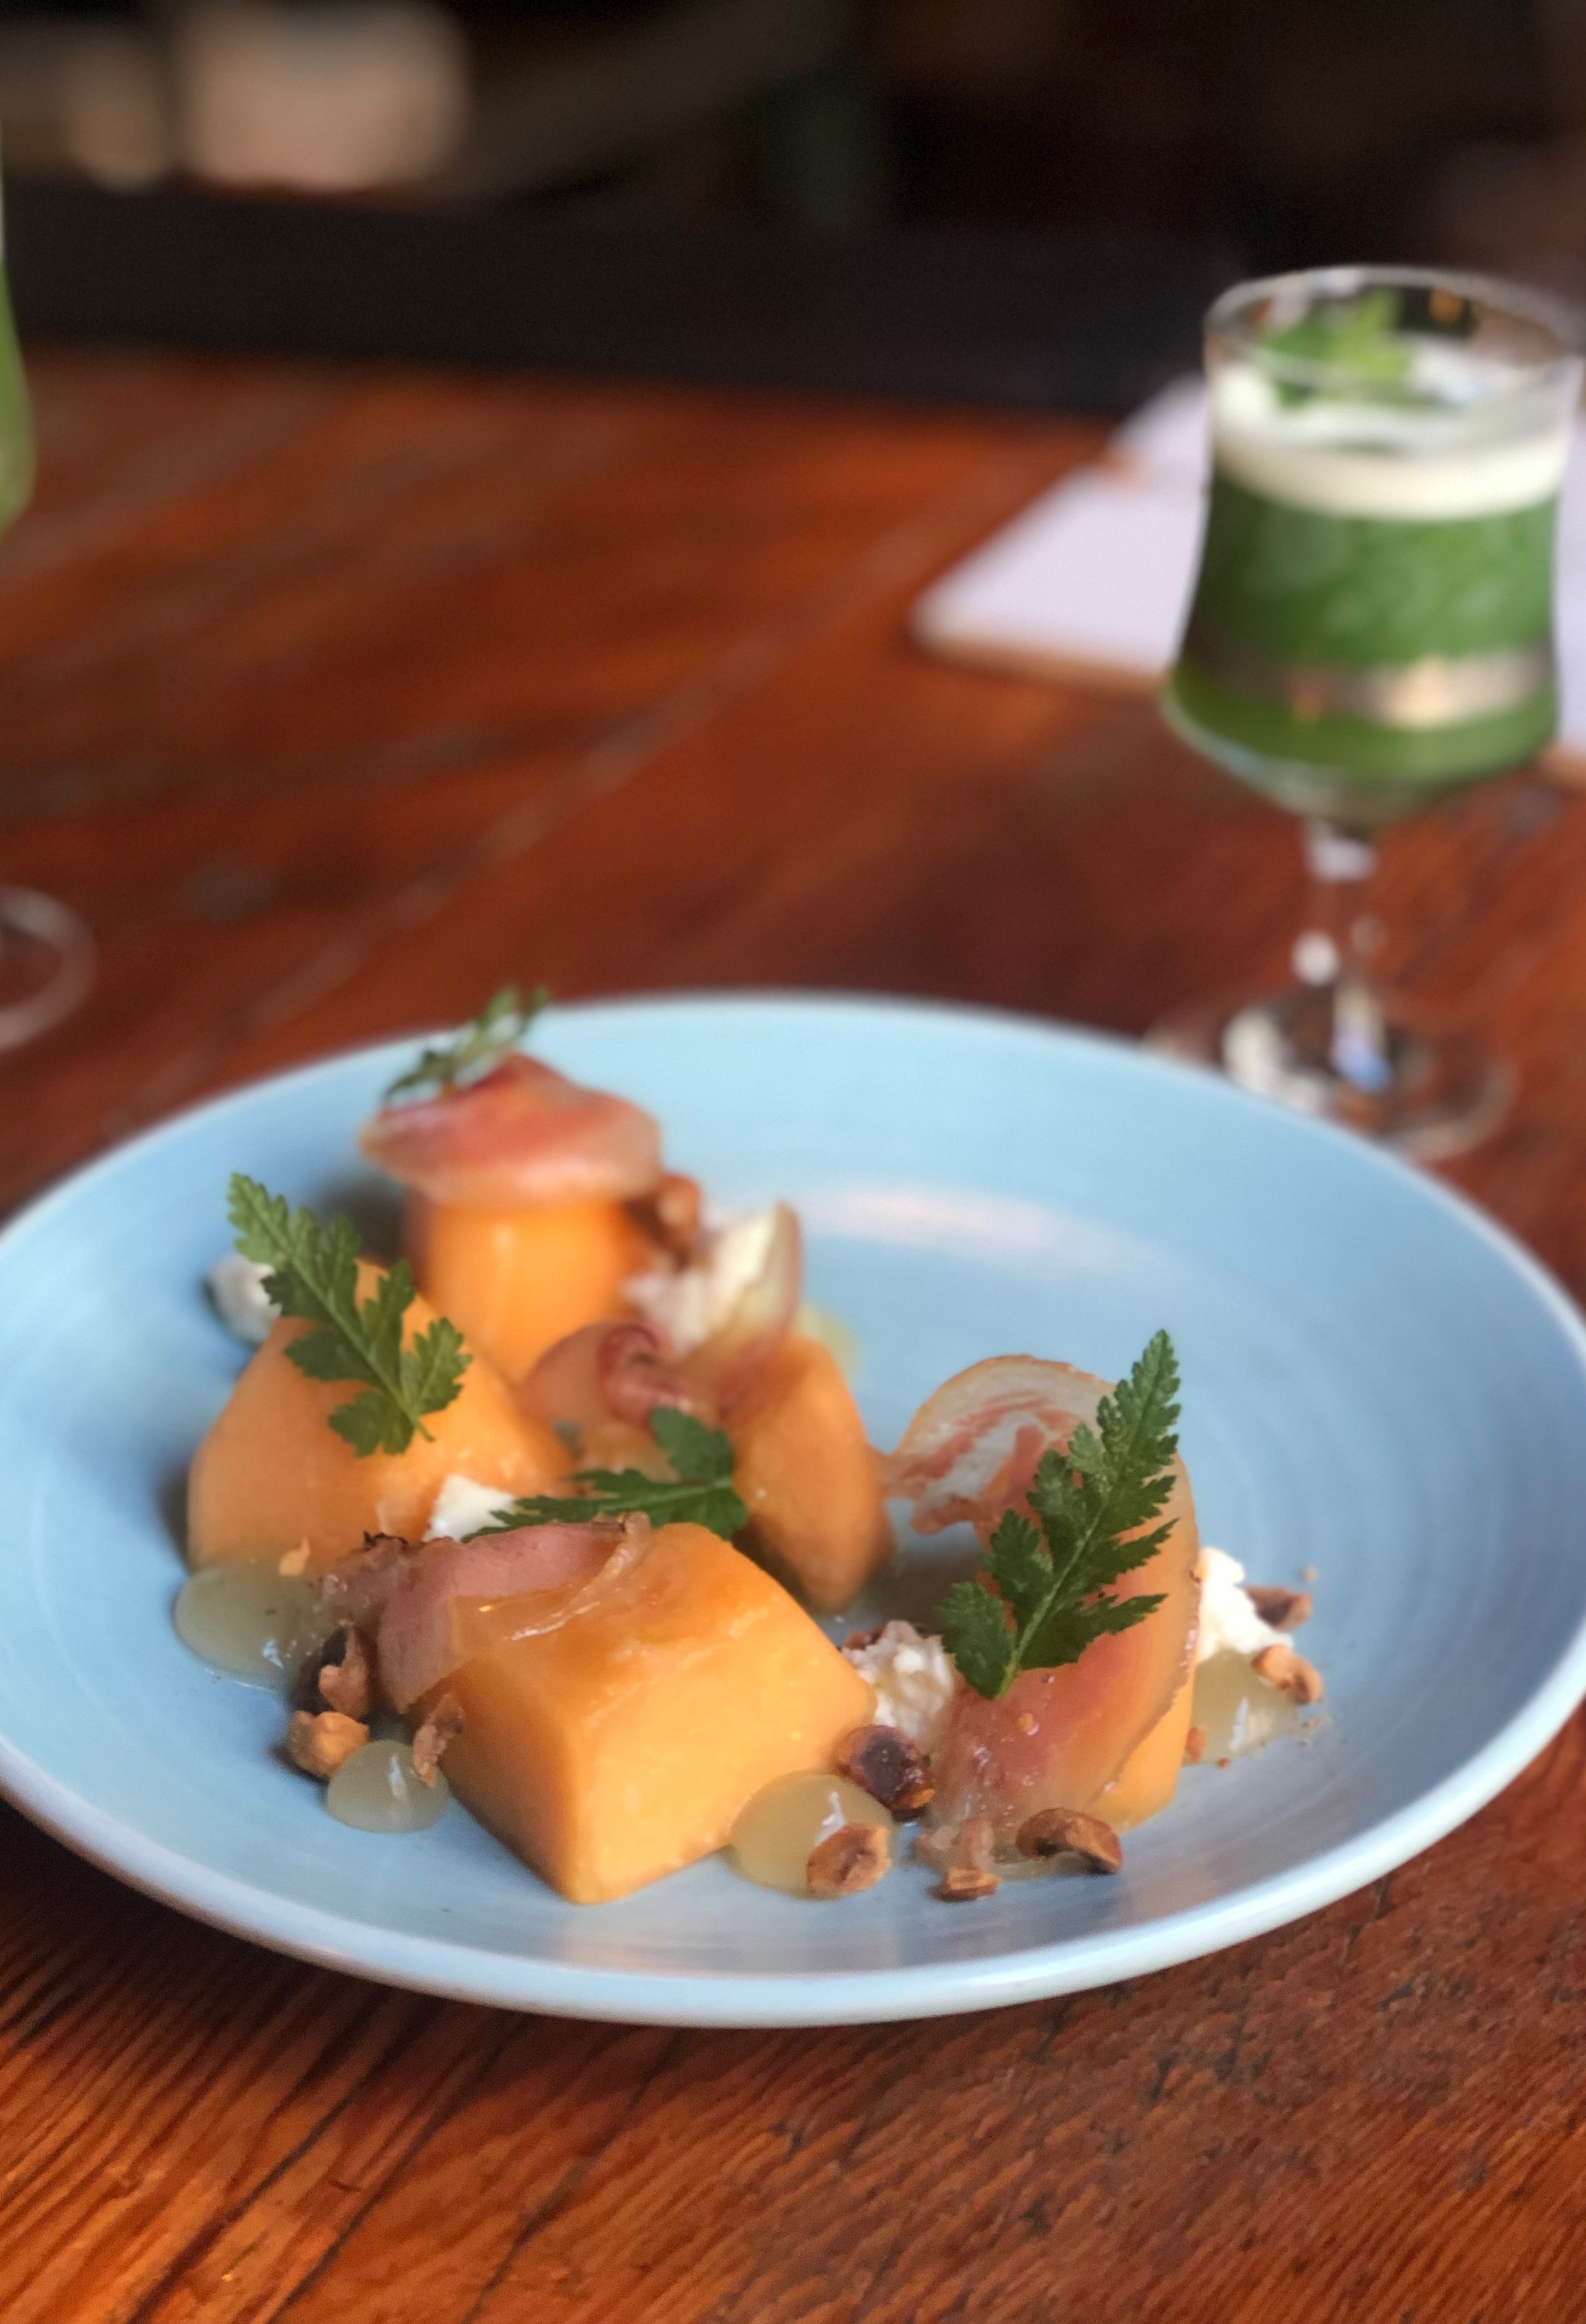 WILDEBEEST SHOWCASES SEASONAL FOCUS WITH FARMERS' HARVEST MENU - August 19, 2019Wildebeest will continue showcasing its ever-growing family of farm providers across the province when it debuts a Farmers' Harvest Menu available exclusively at the Gastown hotspot from September 5 to 18.A family style tasting experience meant to be shared by the entire table, the Farmers' Harvest menu consists of five vegetable-forward dishes and is available for $60 per person plus tax and gratuity, with optional beverage pairings by Bar Manager Alex Black and Wine Director Christina Hartigan available for $32 per person.As Wildebeest's Farmers' Harvest Menu is available in limited quantities and served on a first-come, first-served basis exclusively from September 5 to 18, reservations can be made via Open Table or by calling the restaurant at 604-687-6880.